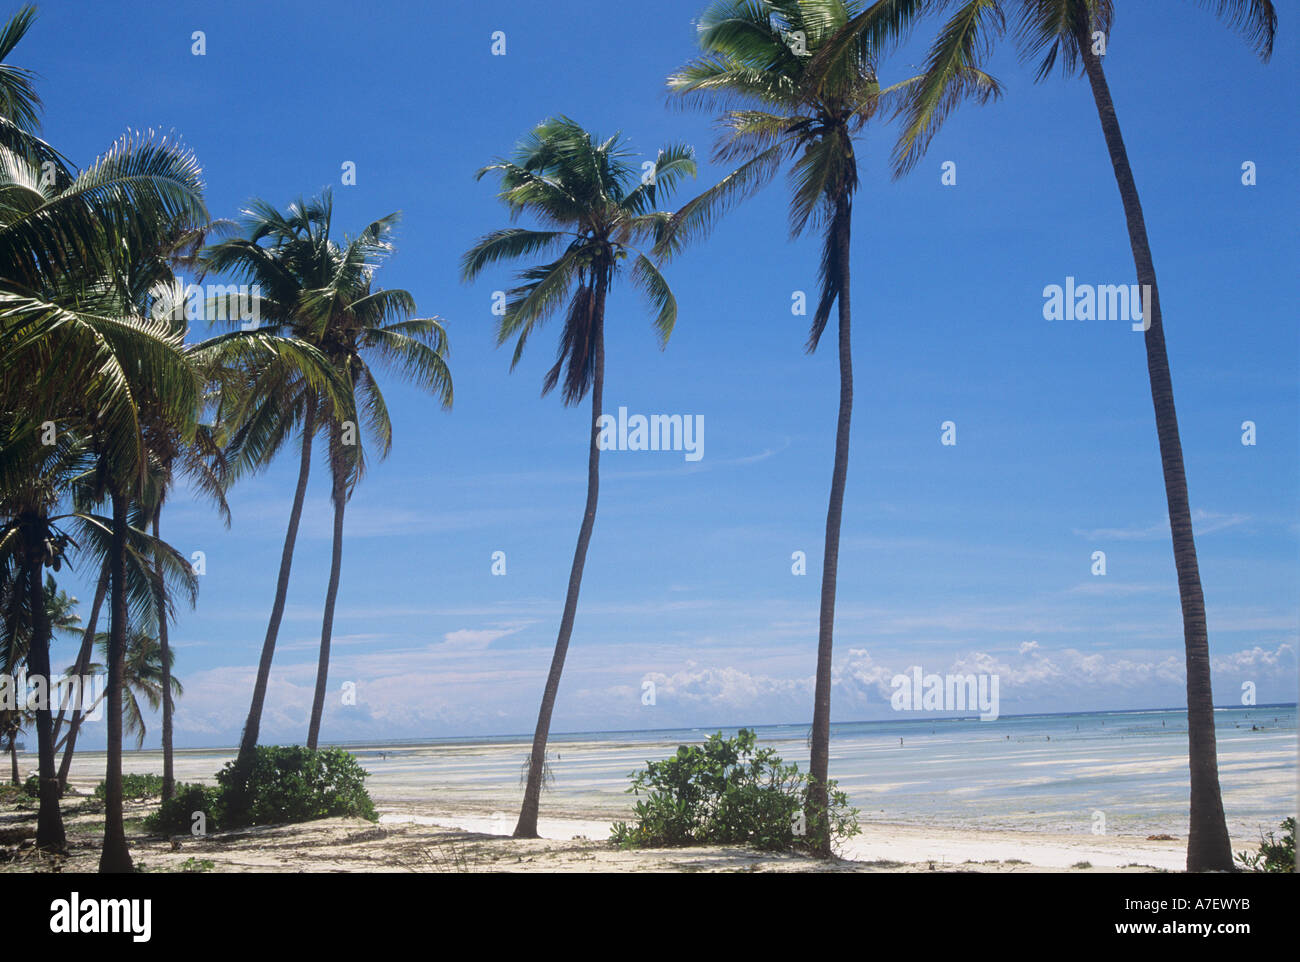 Ocean Road with coconut palms, seafront in Dar es Salaam. Tanzania - Stock Image